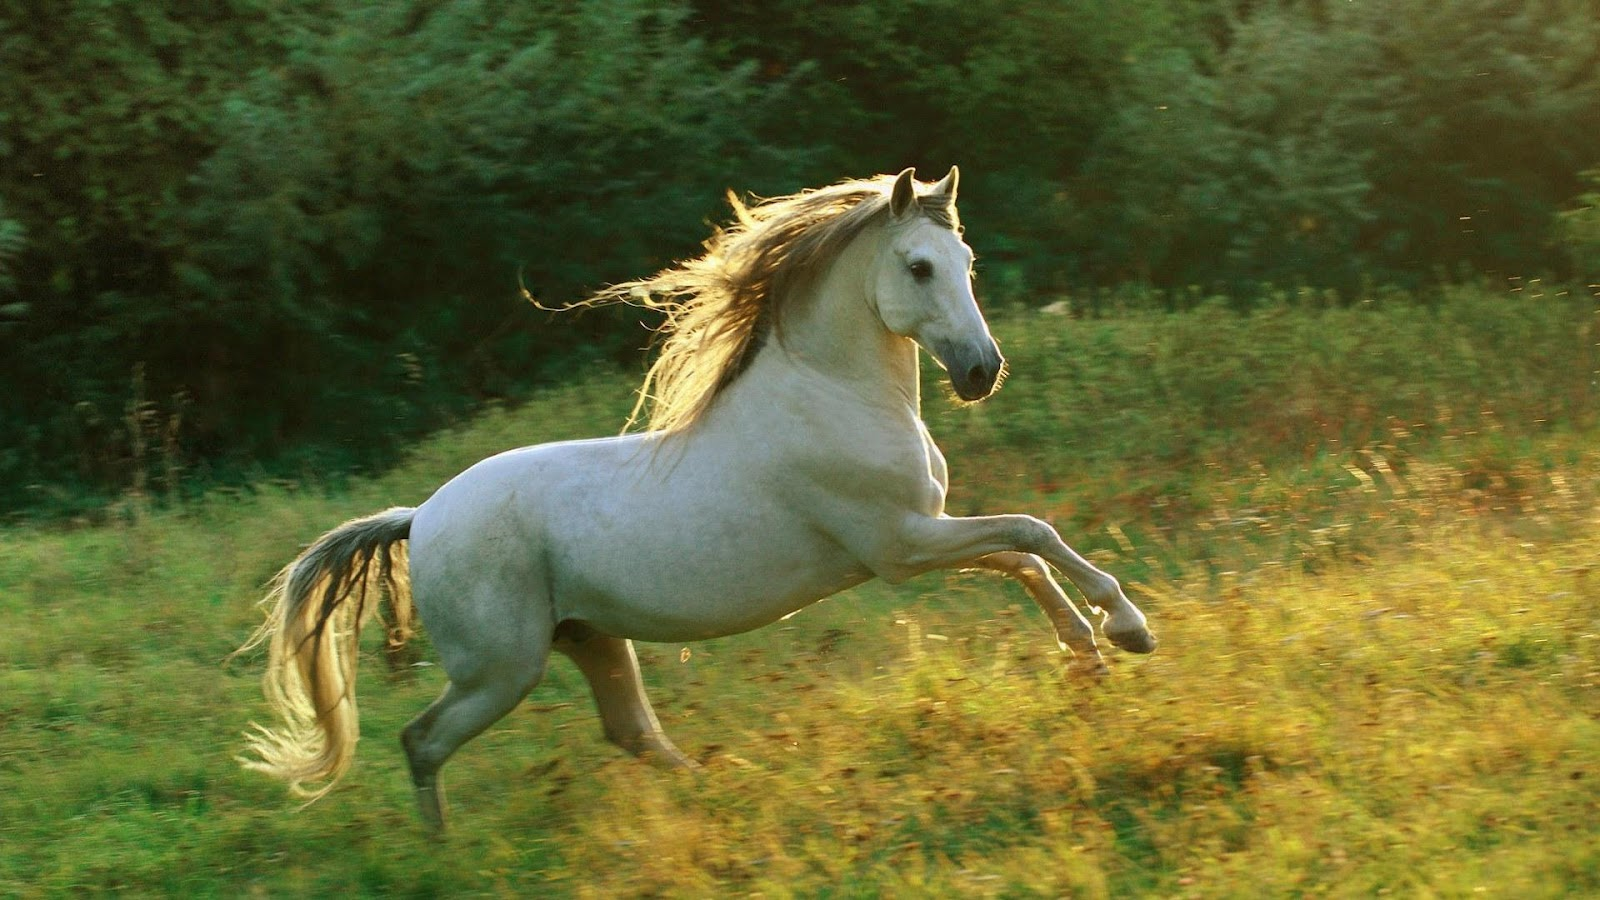 Download   Wallpaper Horse Android - MixoPlanet+%2812%29  Gallery_426047.jpg